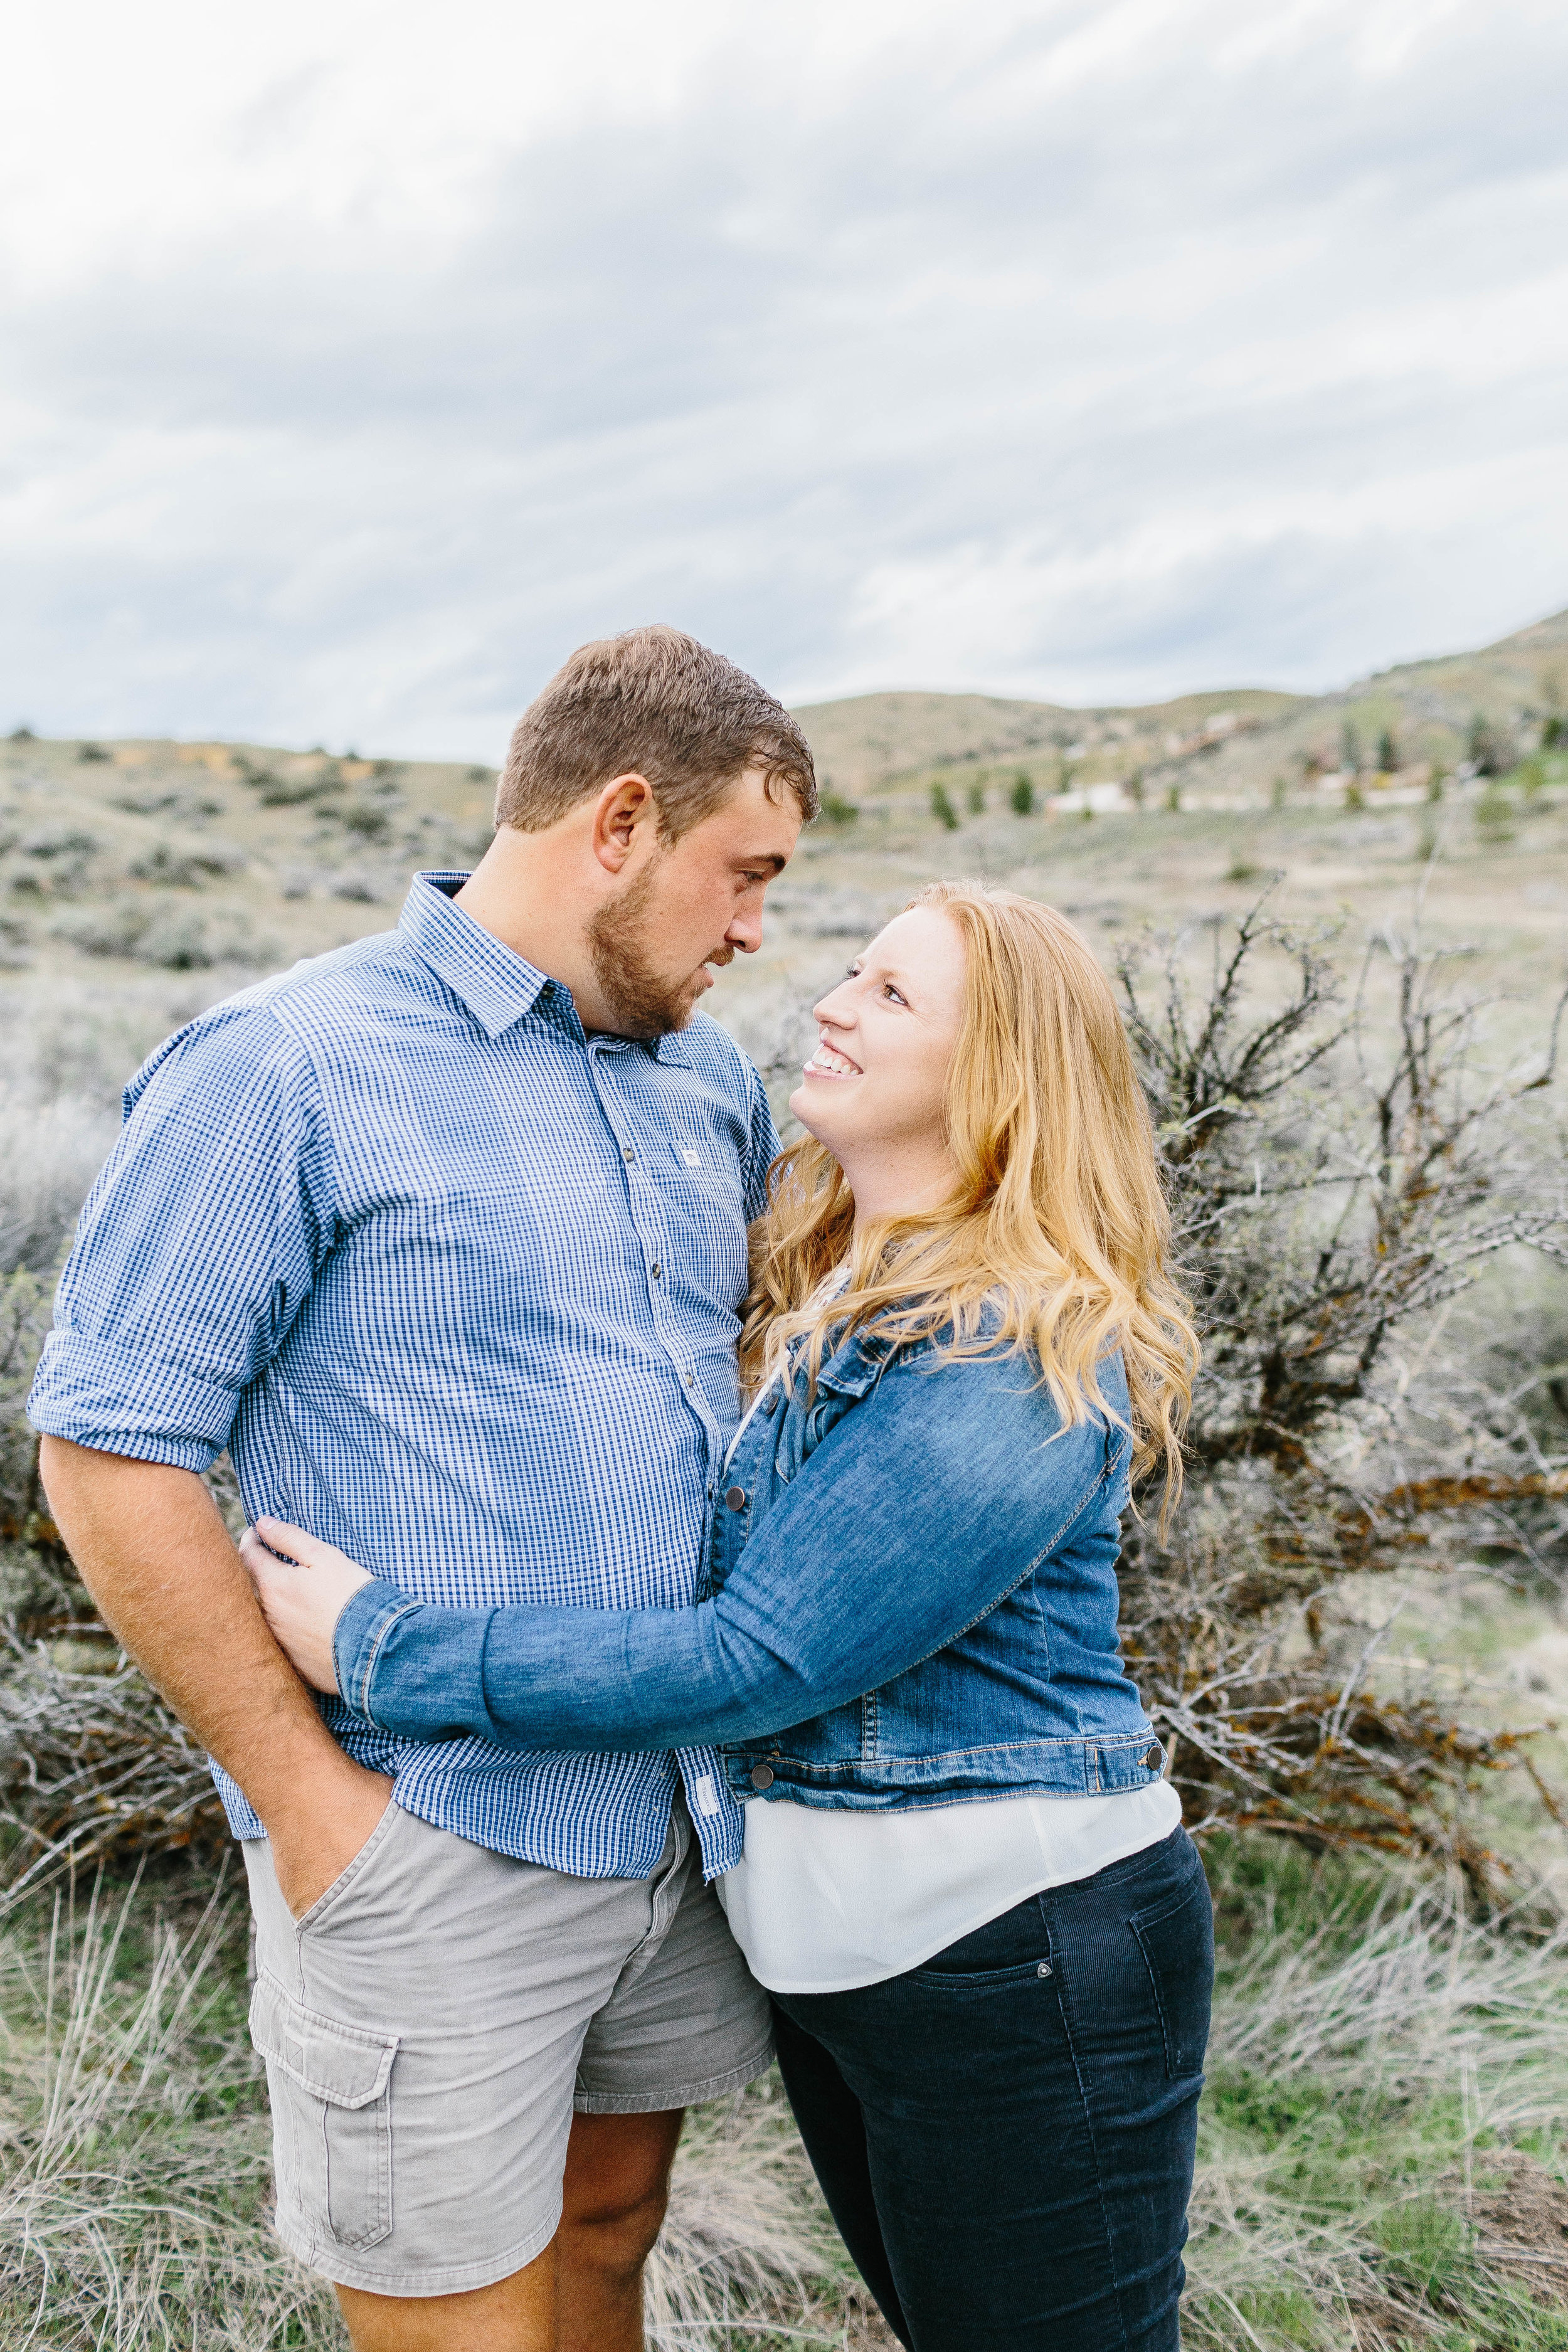 Rohan-and-Lydia-Boise-Foothills-Engagement-Session-5.jpg